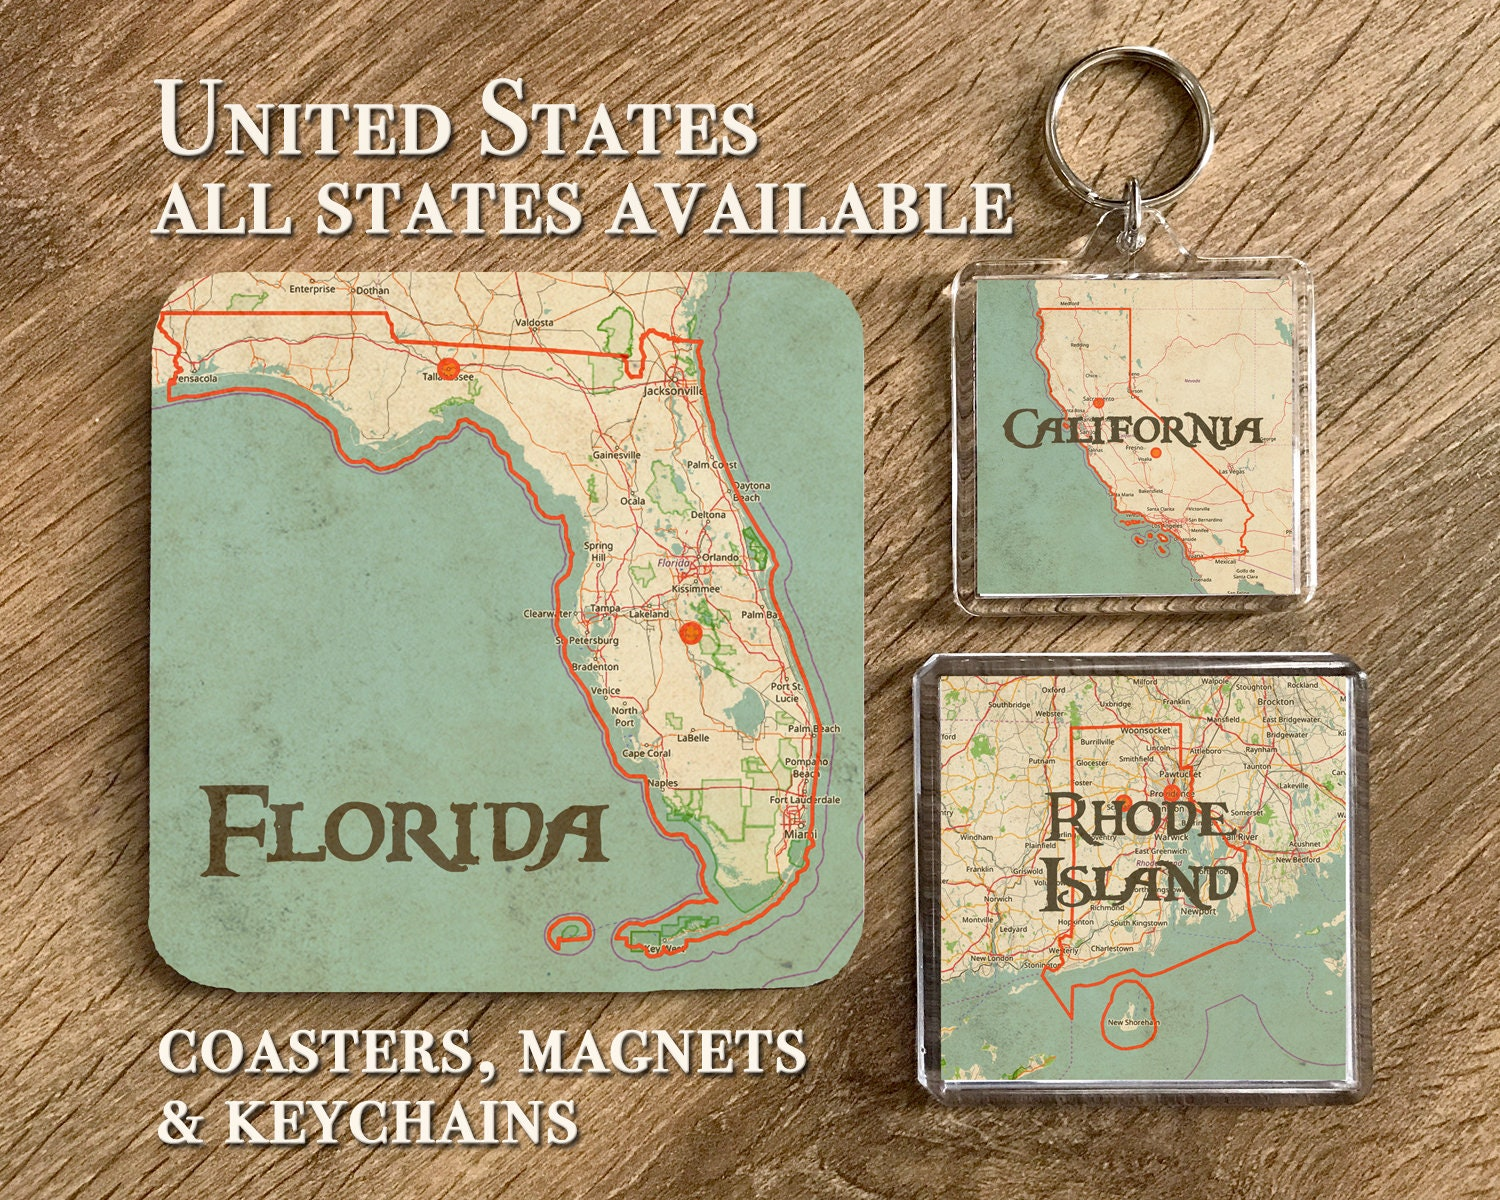 USA Vintage Map Coasters Magnets And Keychains Gifts